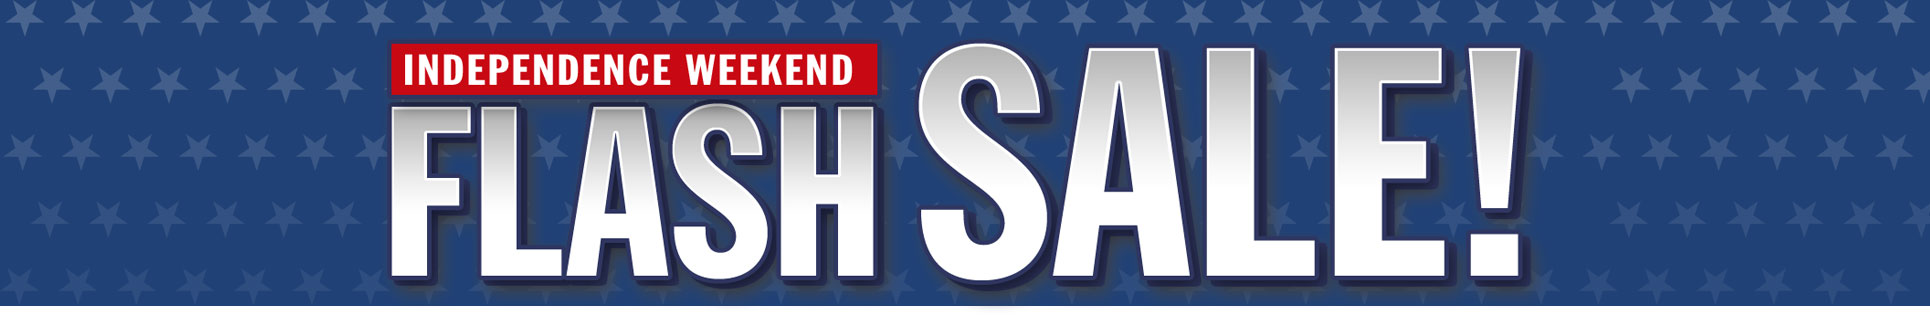 Independence Weekend FLASH Sale: 72 Hours of Savings Fireworks!